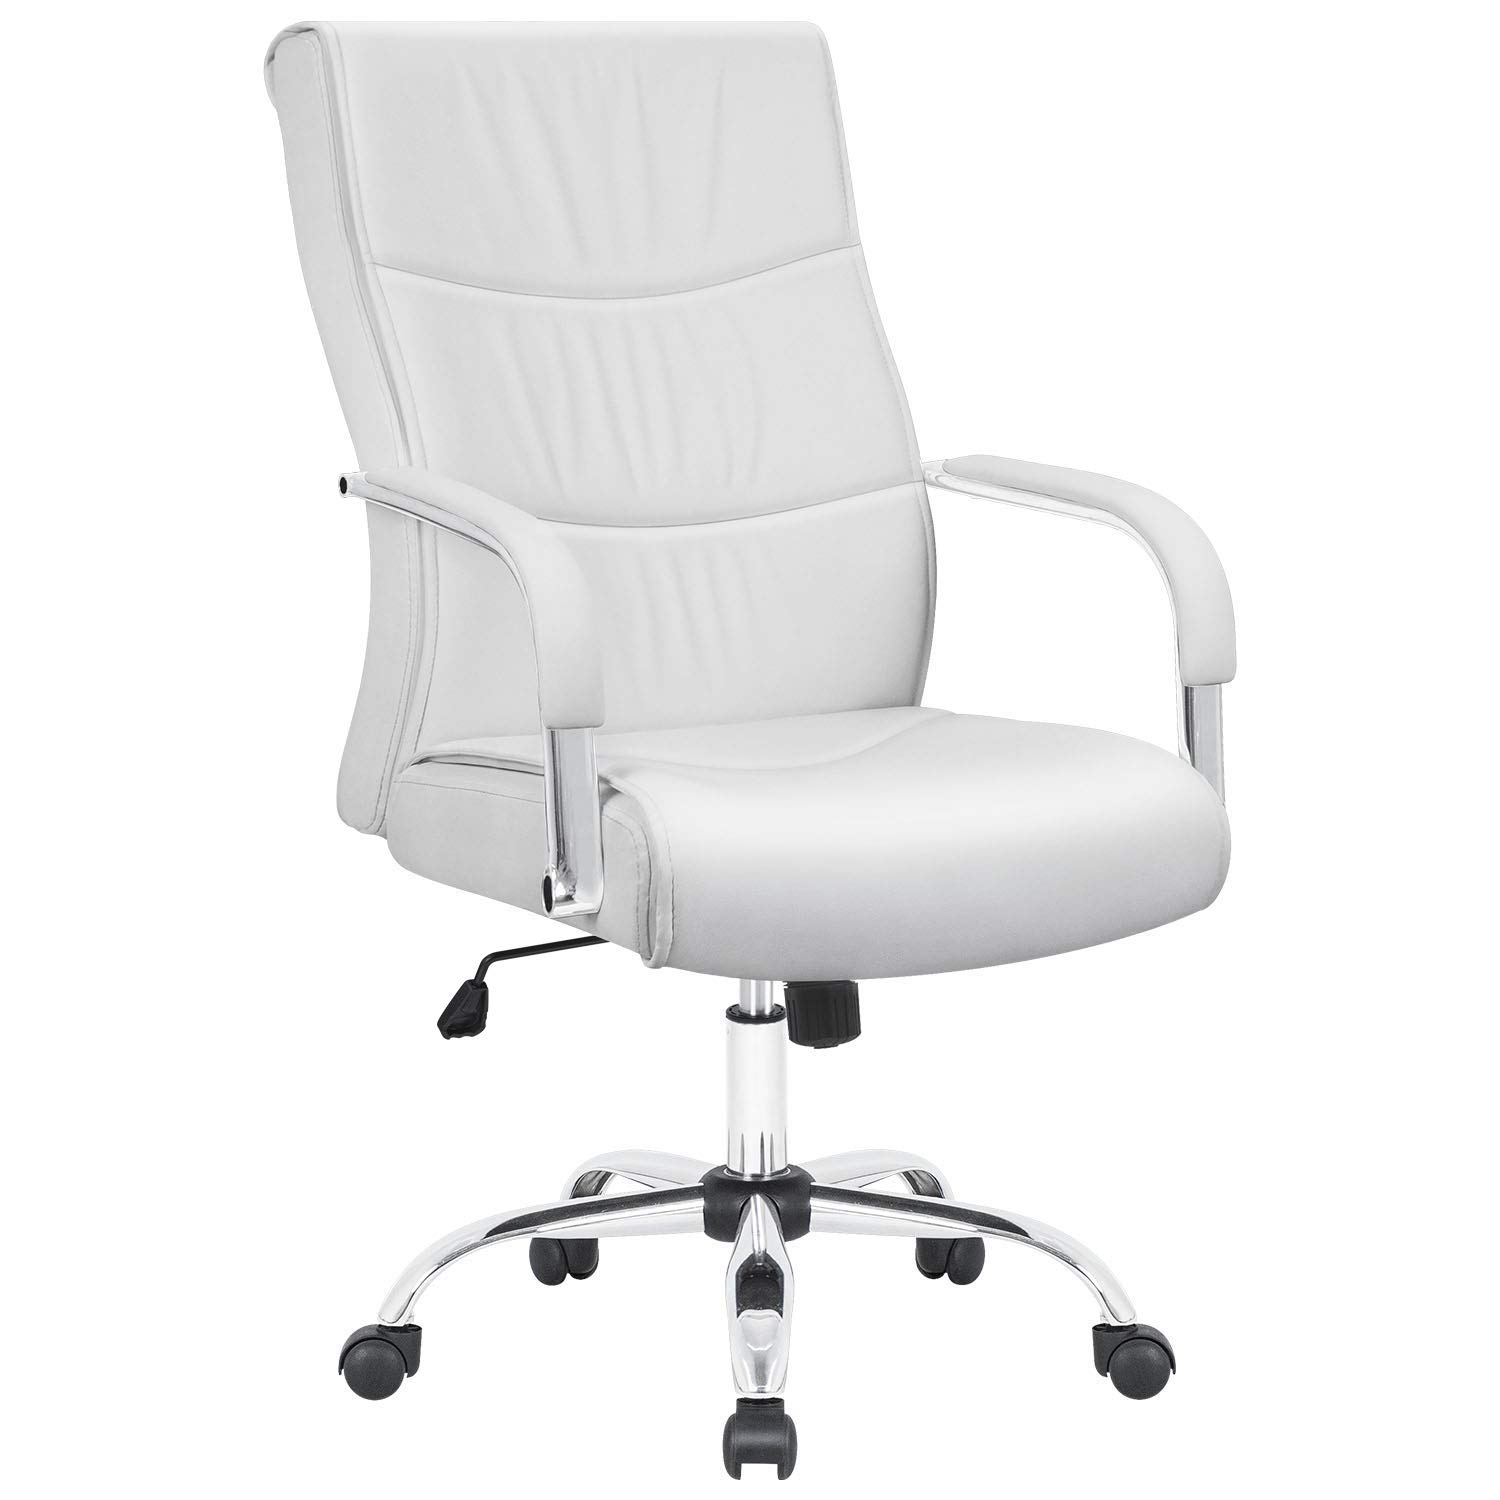 Furmax High Back Office Desk Chair Conference Leather Executive with Padded Armrests,Adjustable Ergonomic Swivel Task Chair with Lumbar Support (White) by Furmax